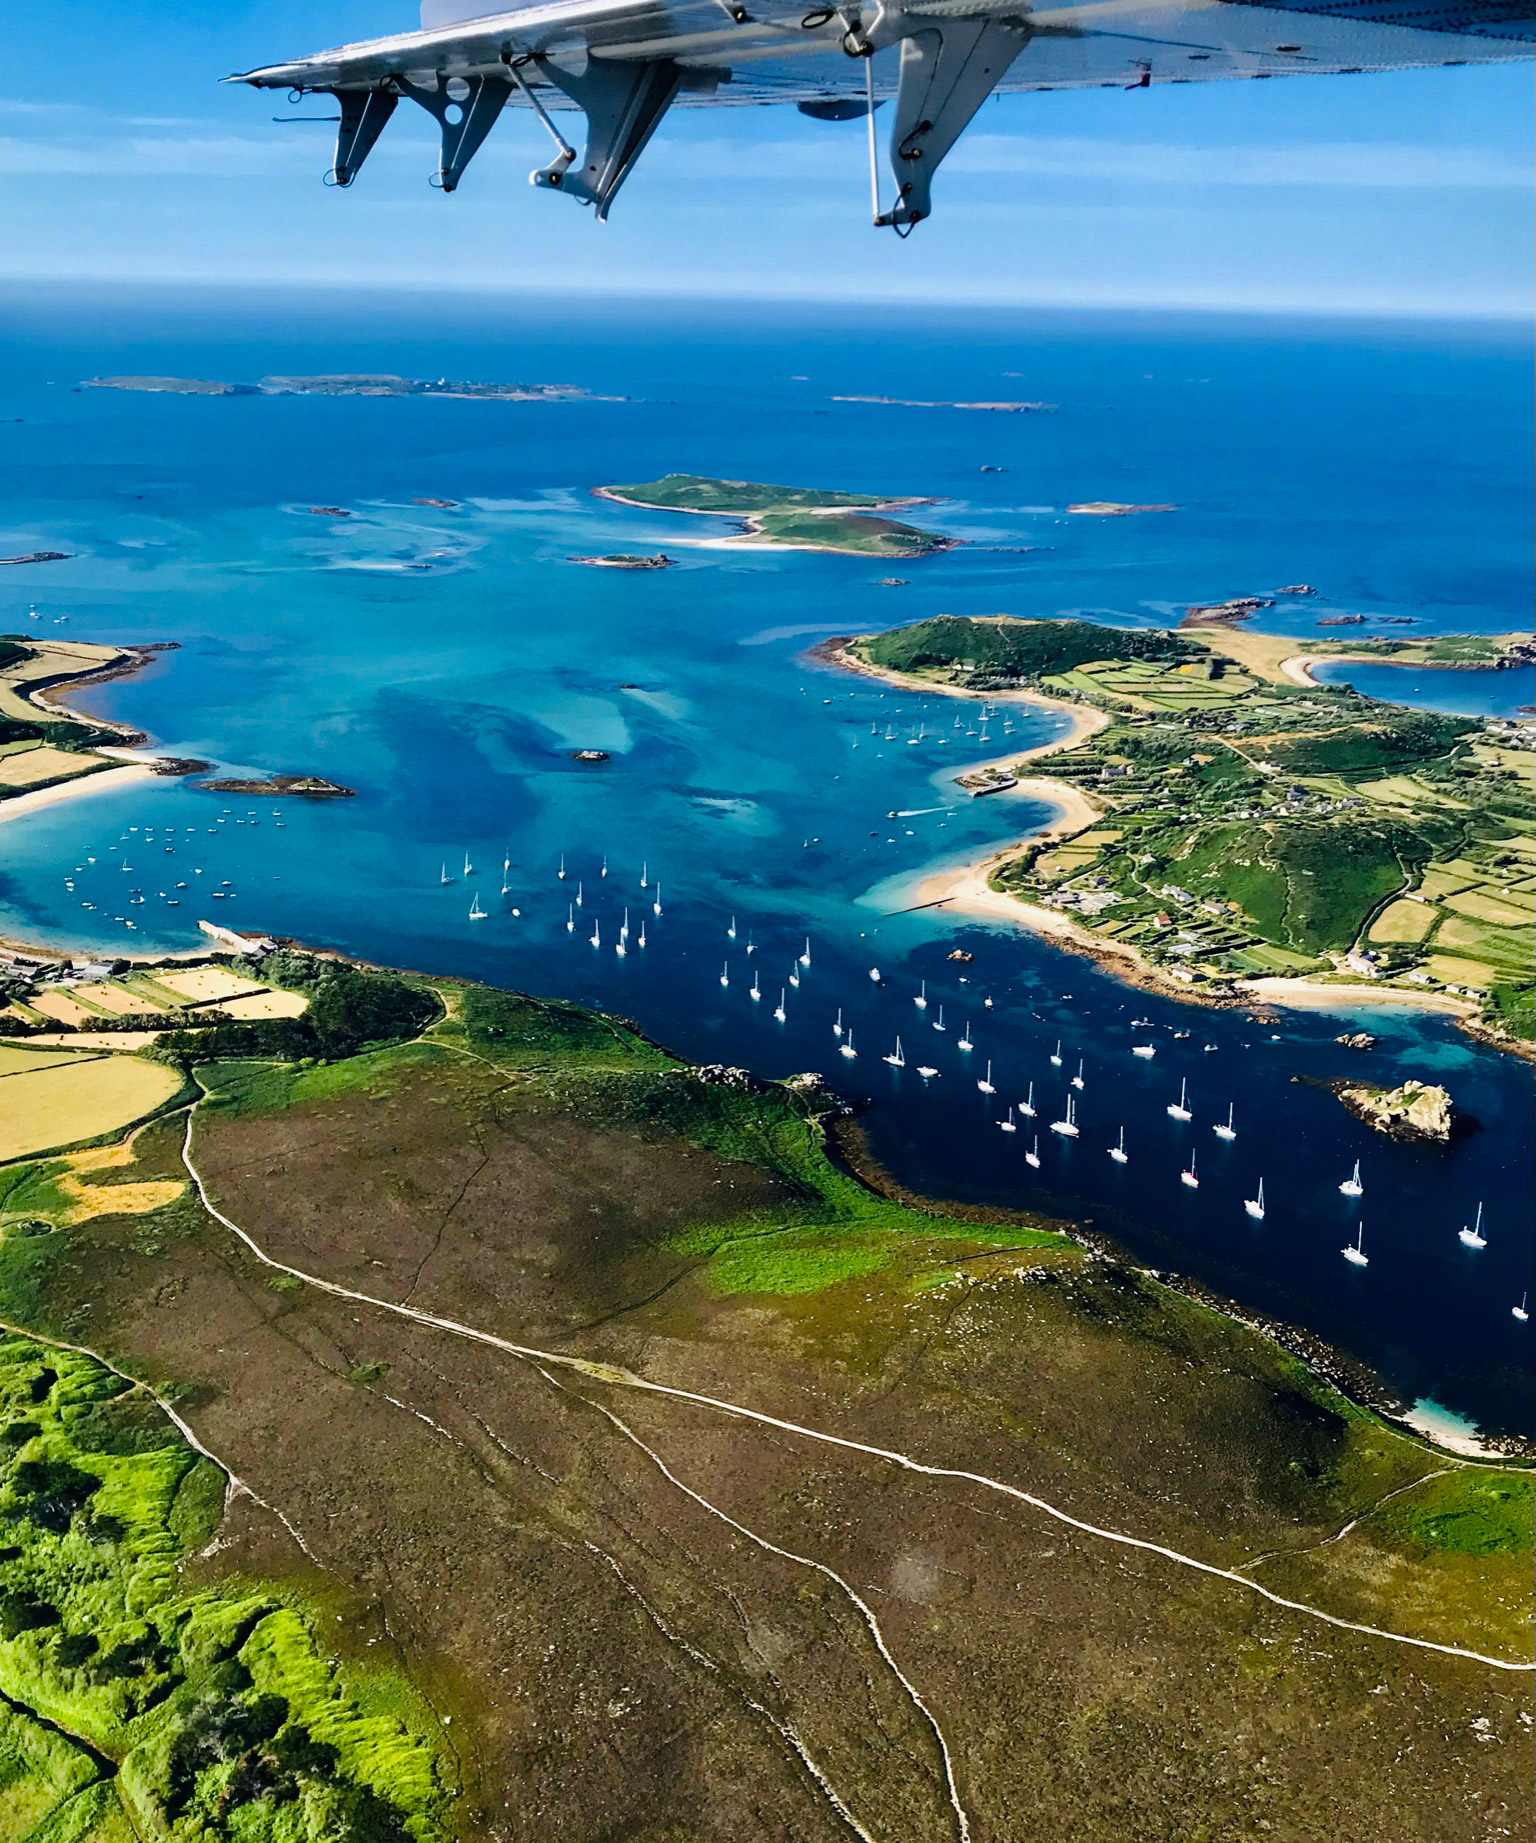 Aerial image of the Isles of Isles of Scilly and surrounding waters taken from a light aircraft